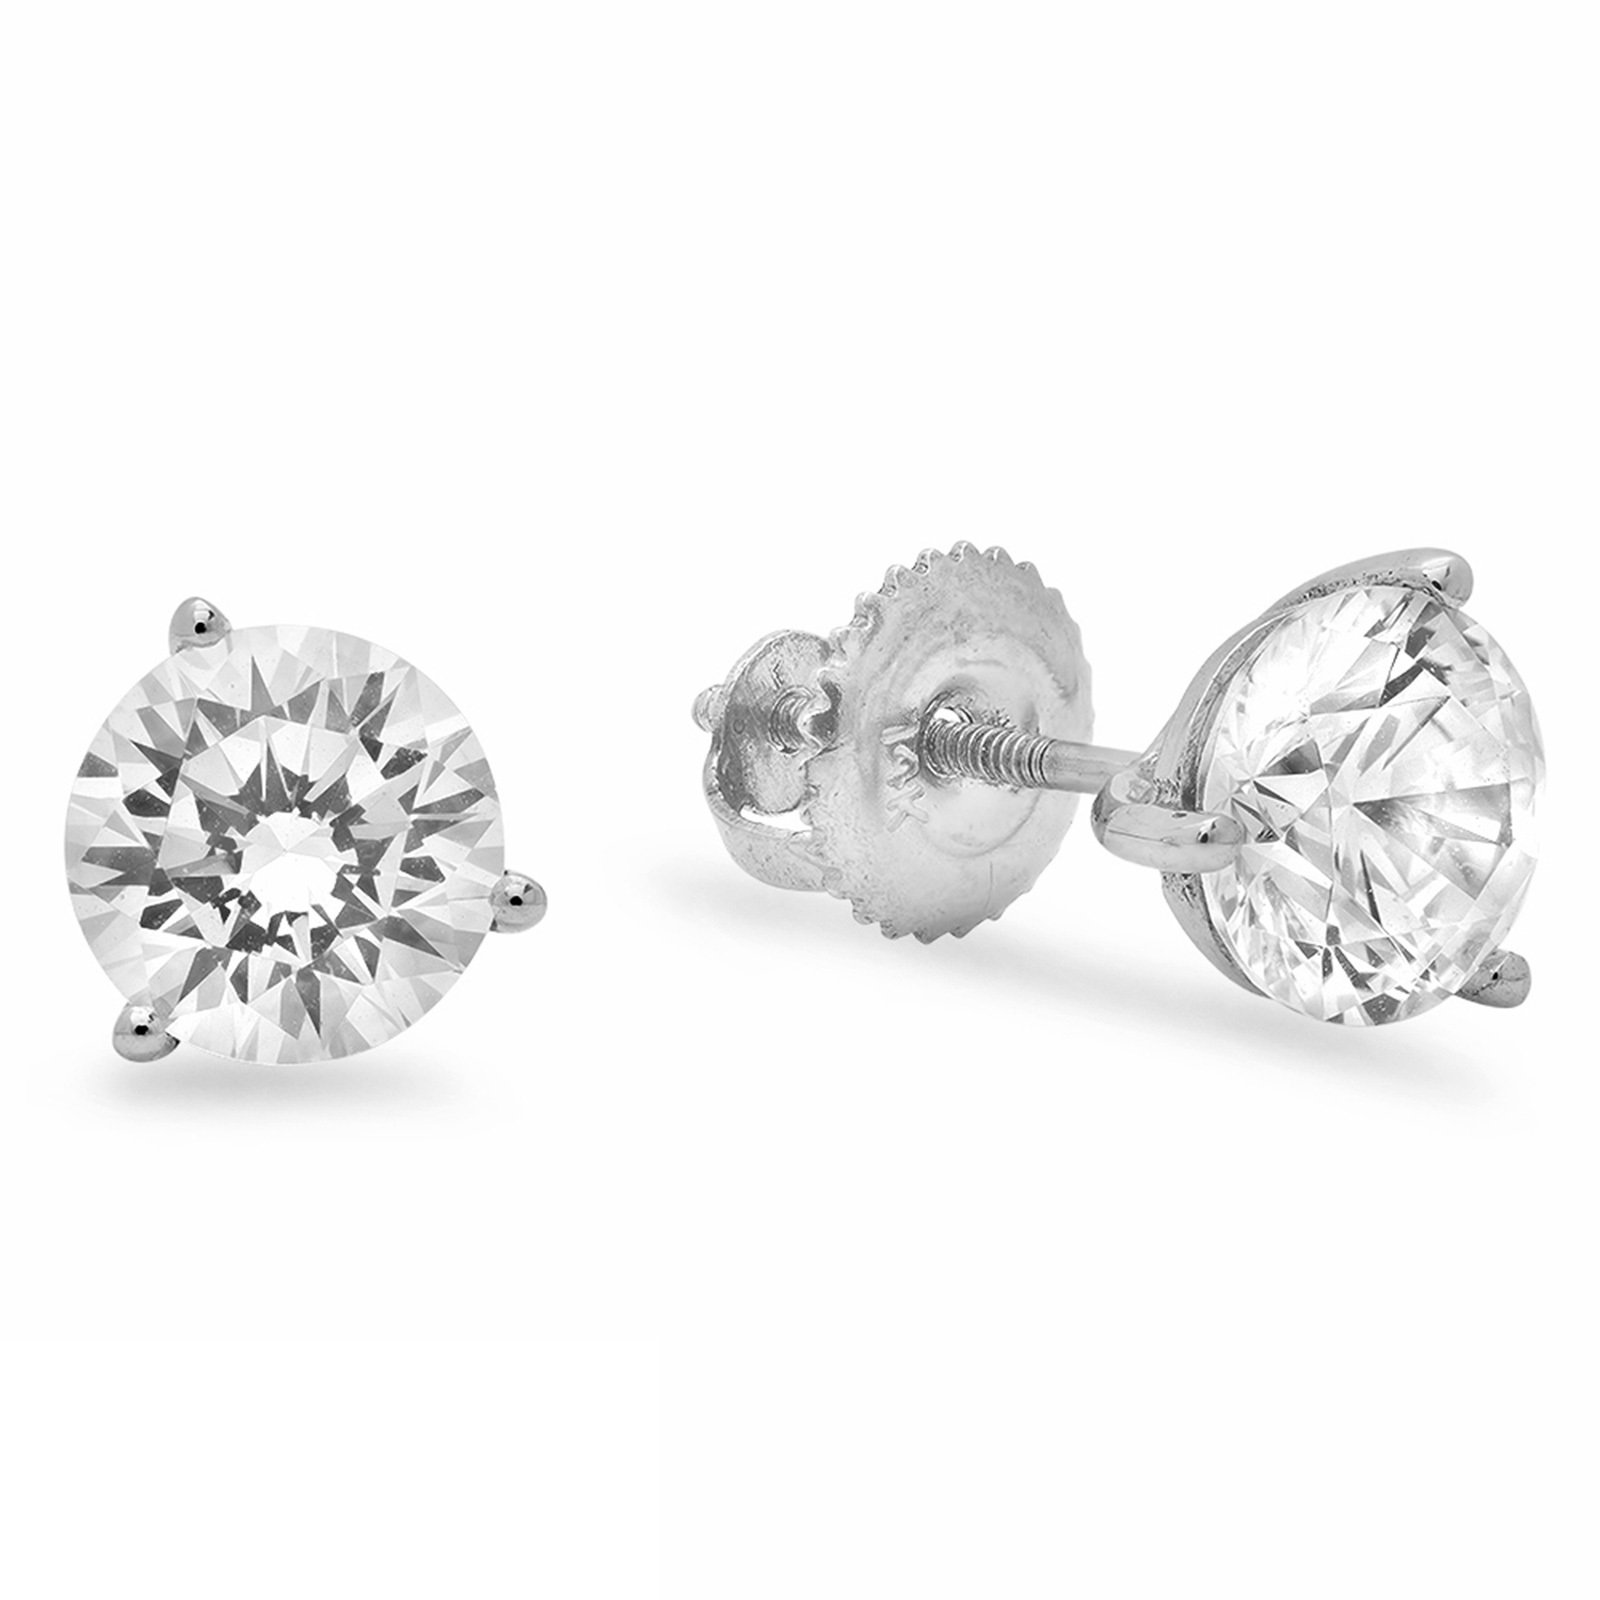 2.10 CT Round Cut CZ Solitaire Martini Style Stud Earrings in 14k White Gold Screw Back